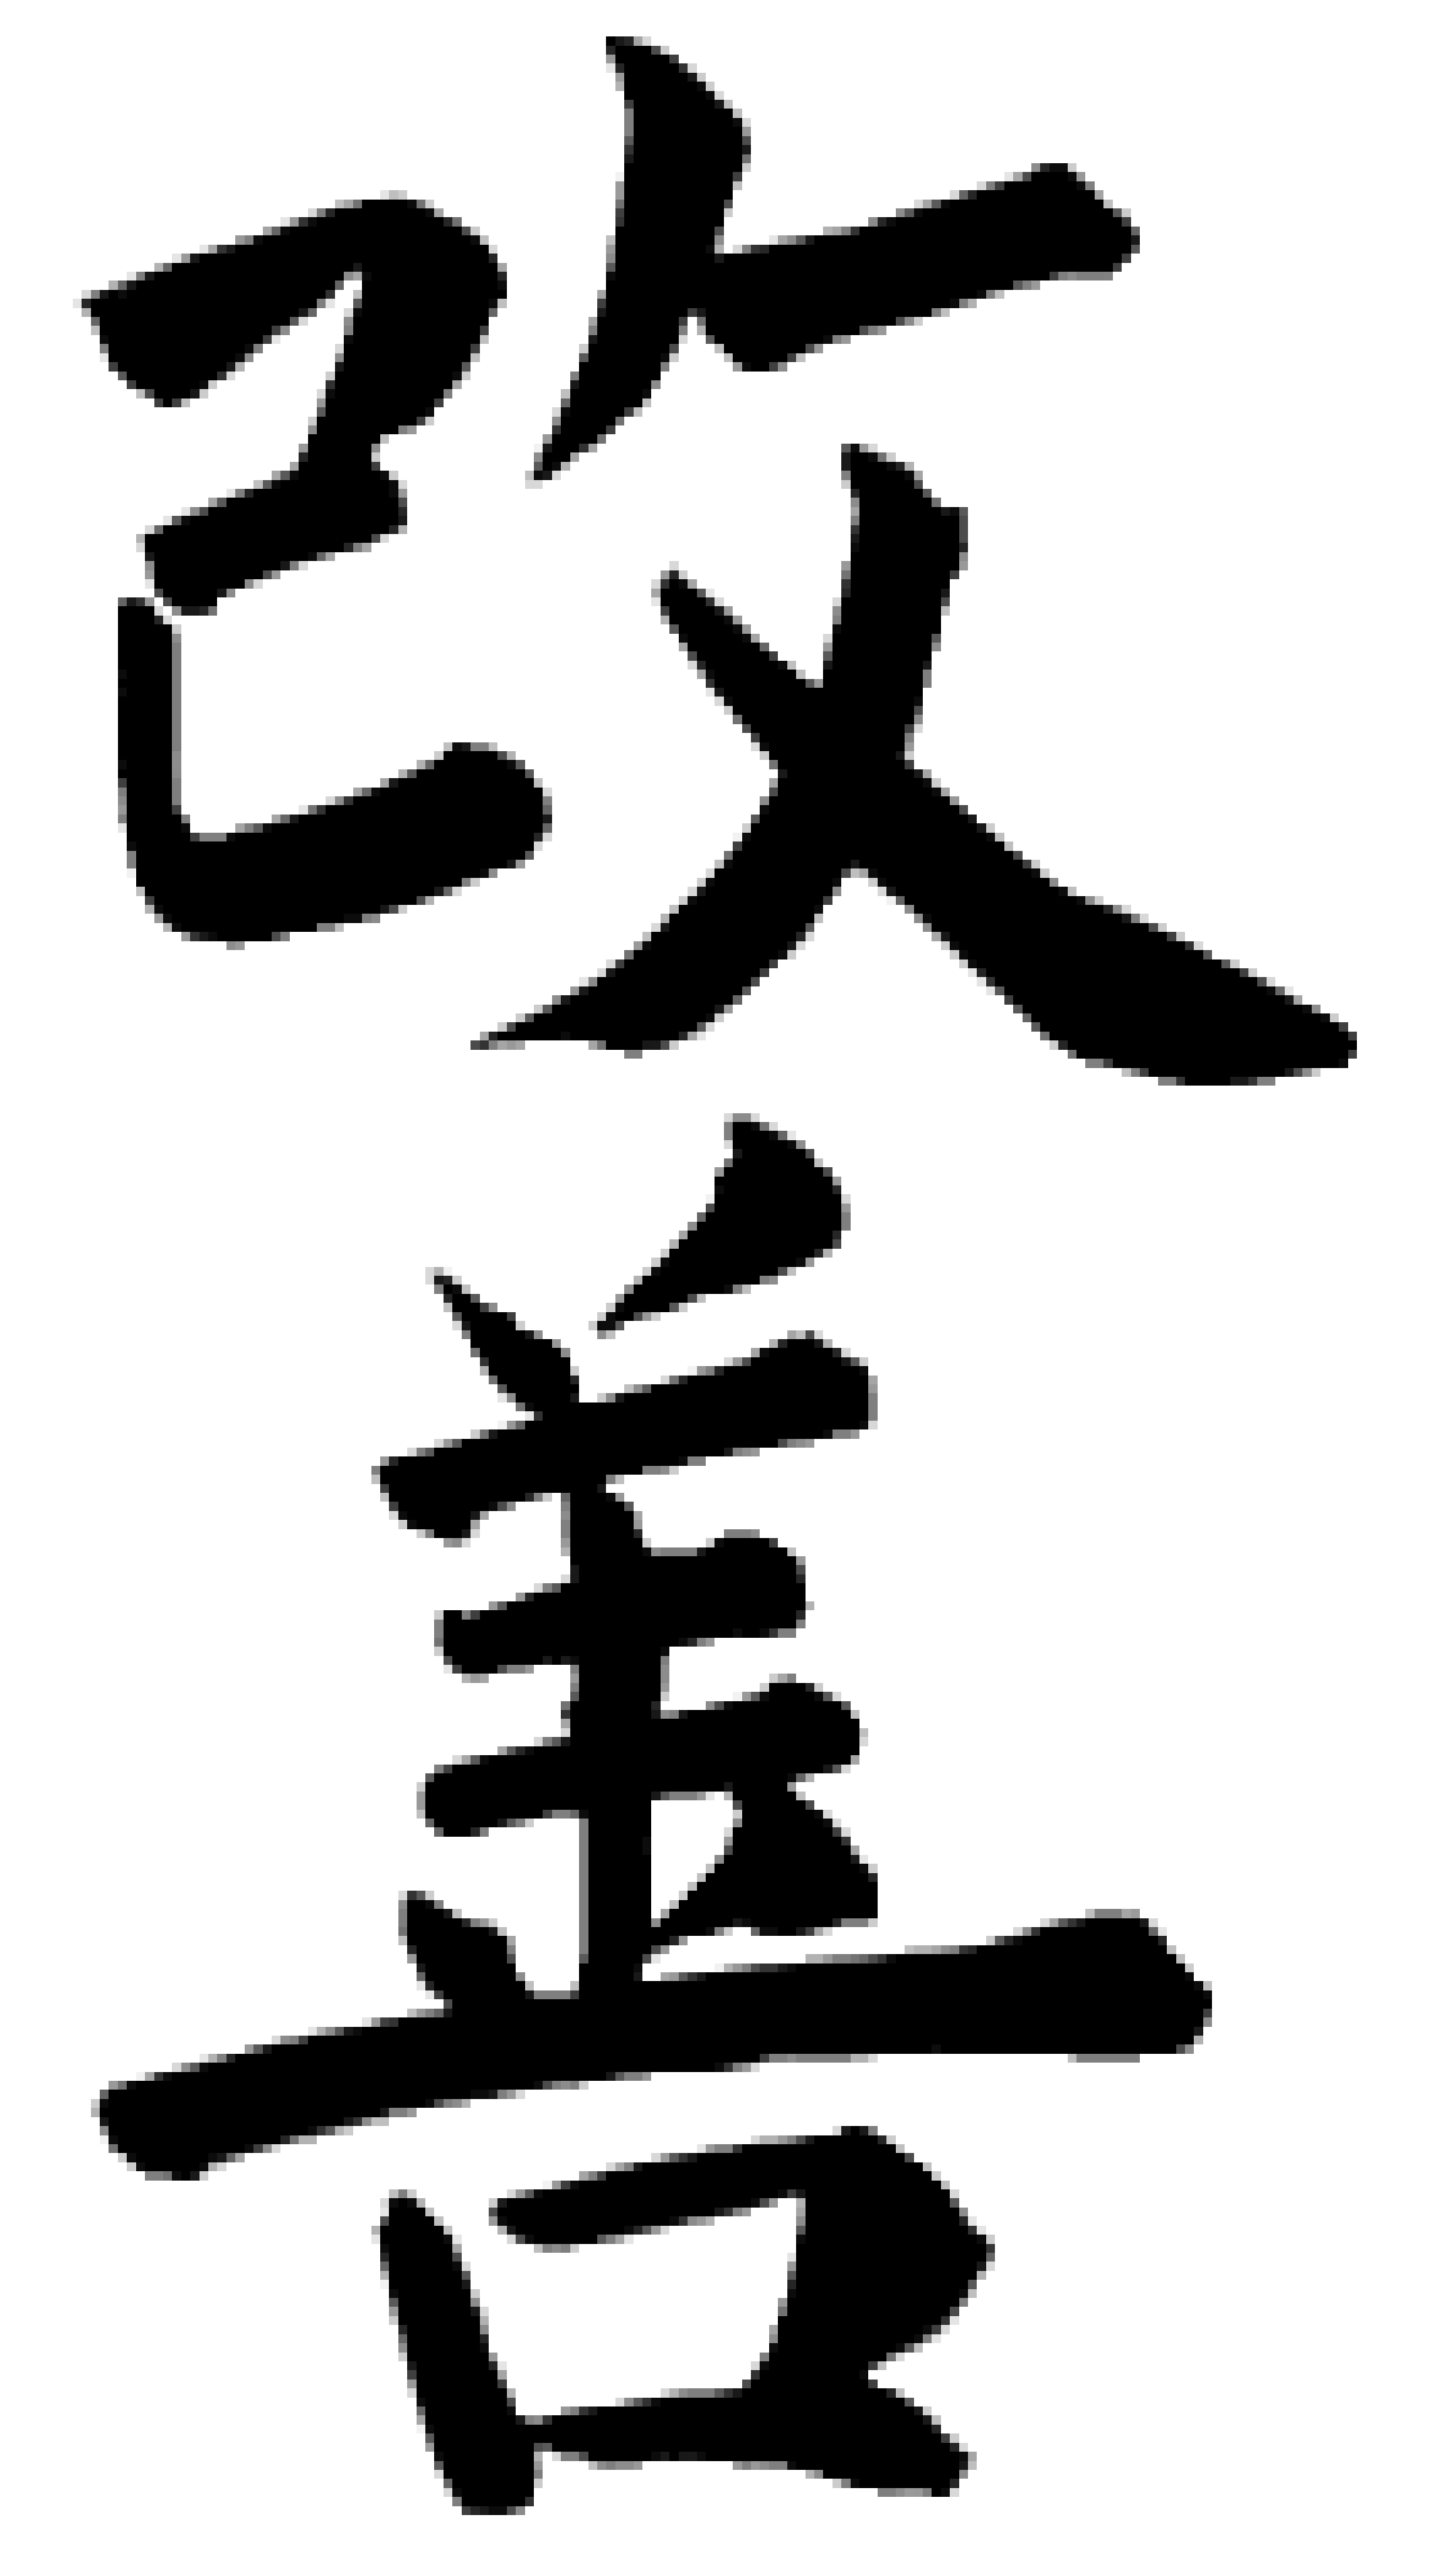 Kaizen in Japanese characters